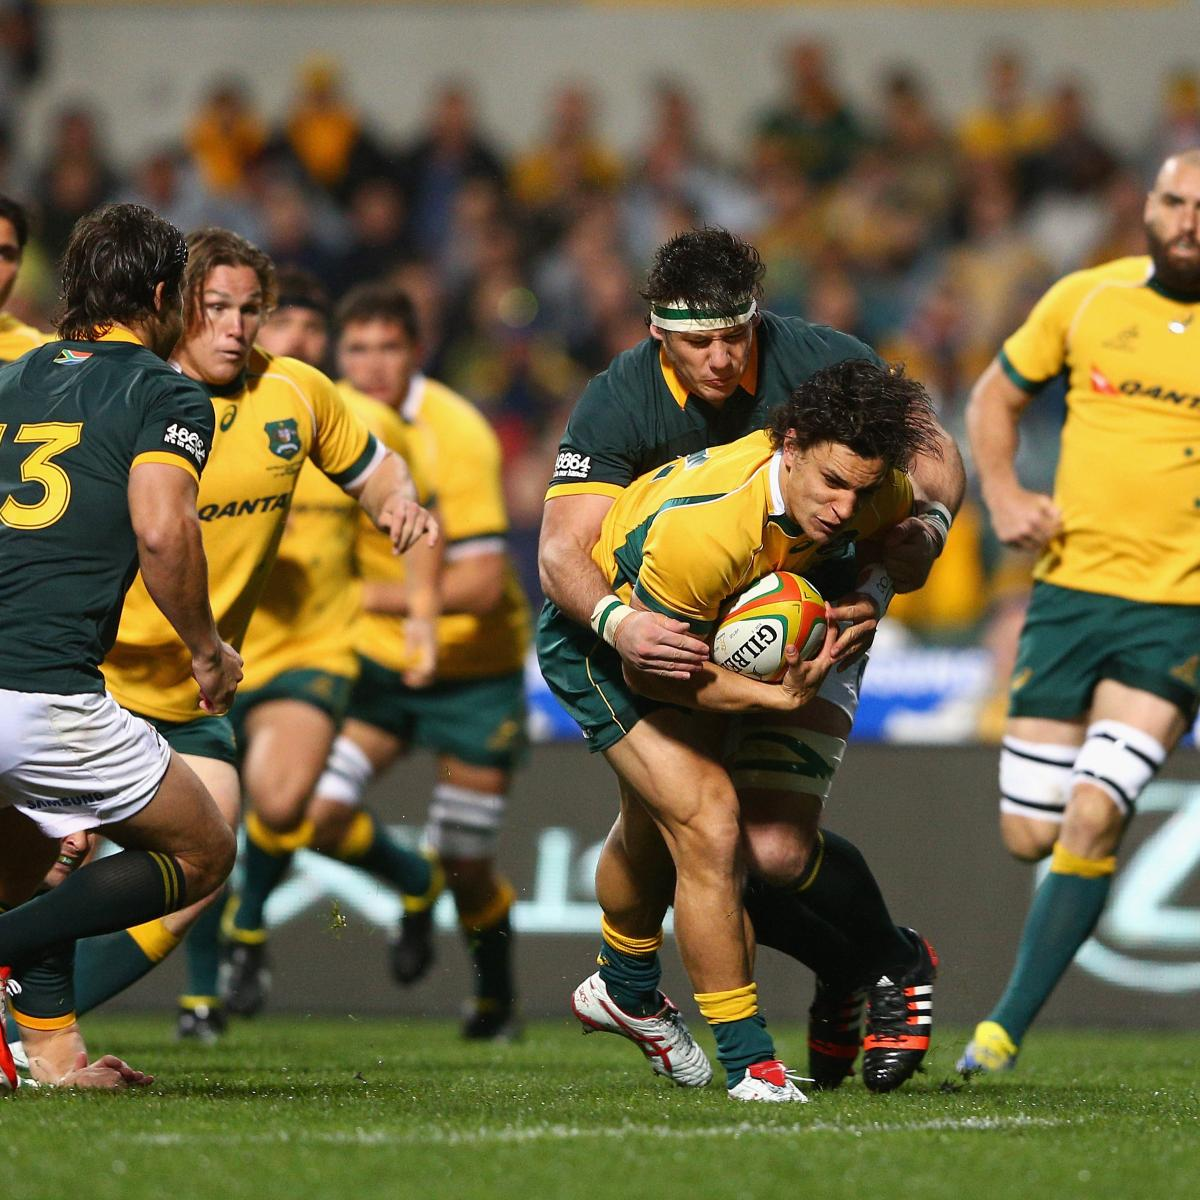 South Africa Vs. Australia: Date, Time, Live Stream And